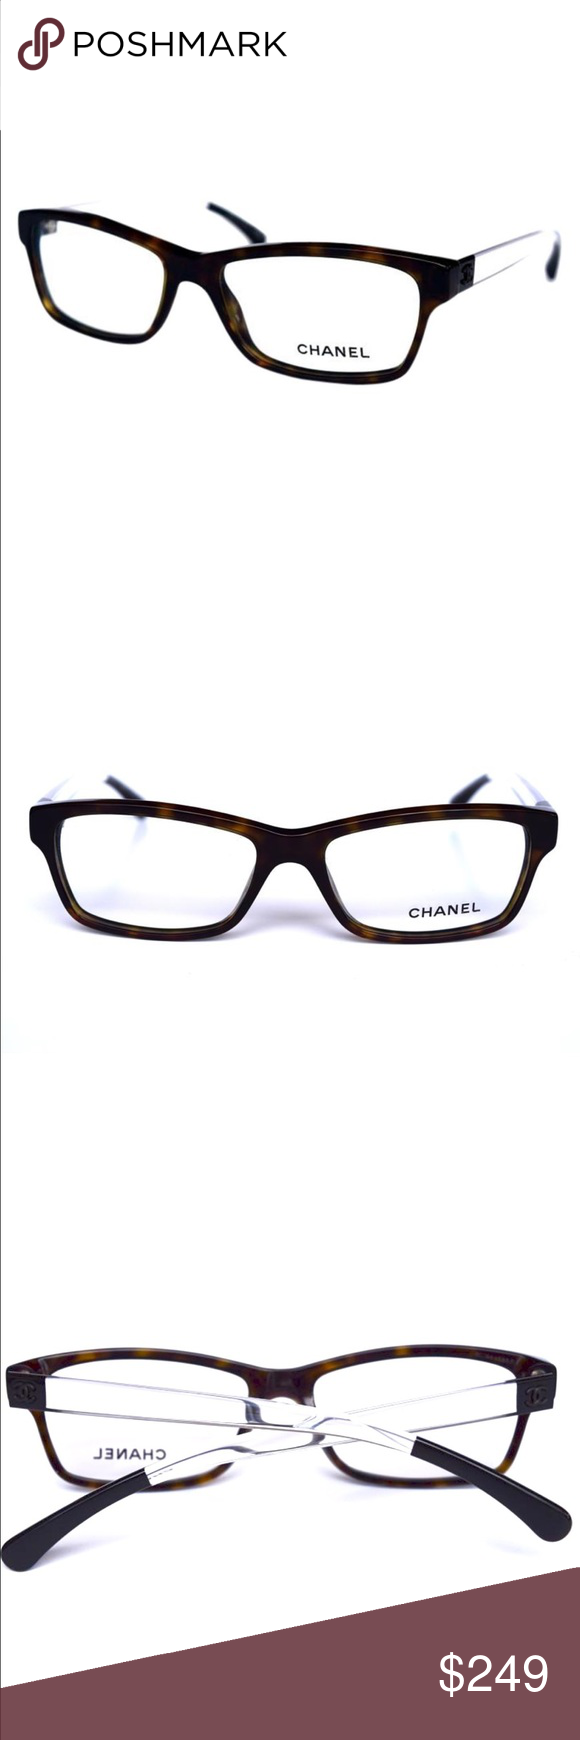 CHANEL Eyeglasses Brown with Clear Temples CHANEL Eyeglasses Brown with Clear Temples  56mm-16mm-140mm  New Without Tags!!!  Comes with original Chanel case only.  Guarantee 100% Authentic CHANEL Accessories Glasses